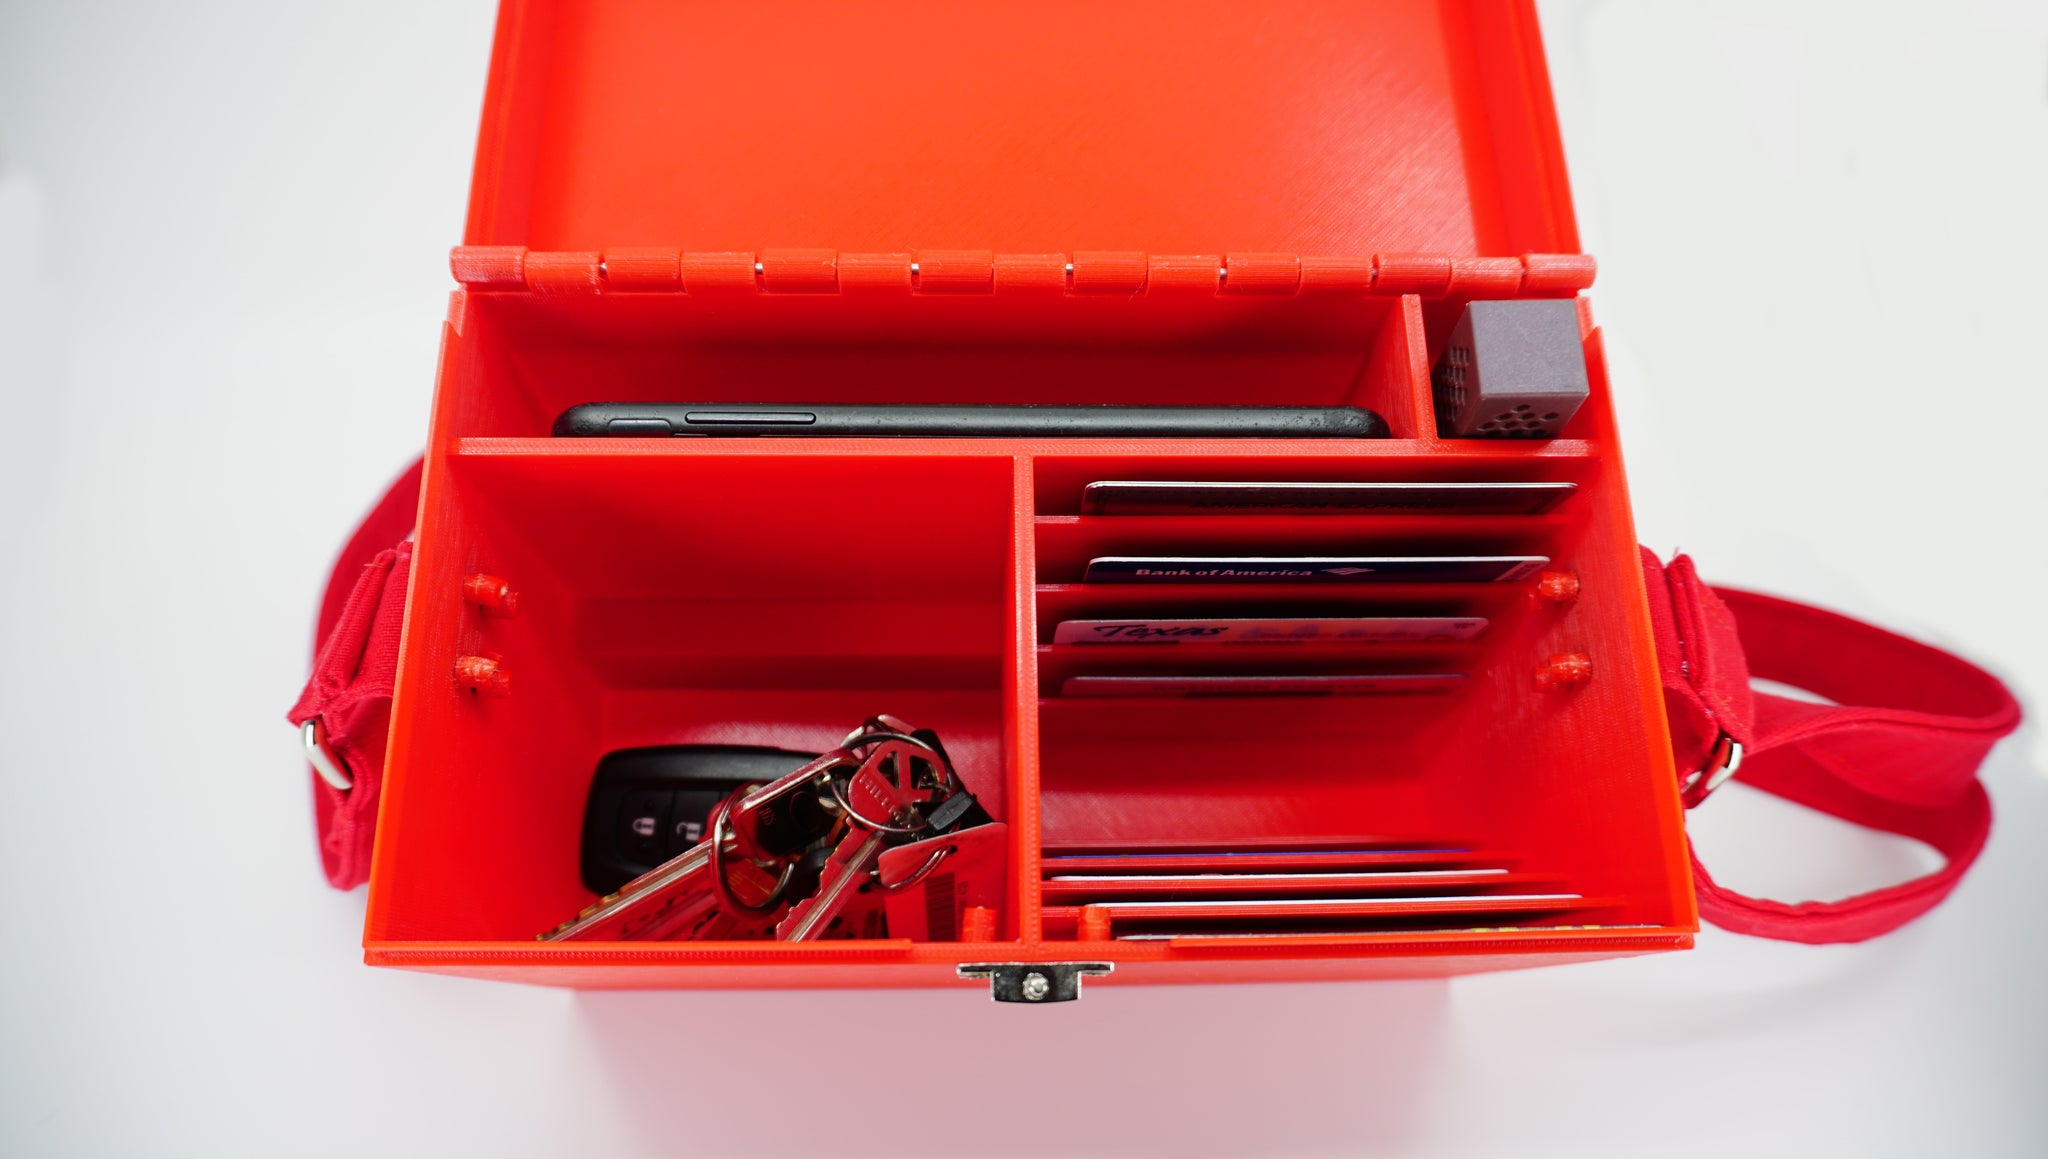 Red Purse With Sturdy Compartments - Built in Wallet and Organizer - Lots of Pockets - Unique & Unusual - Miss Utility